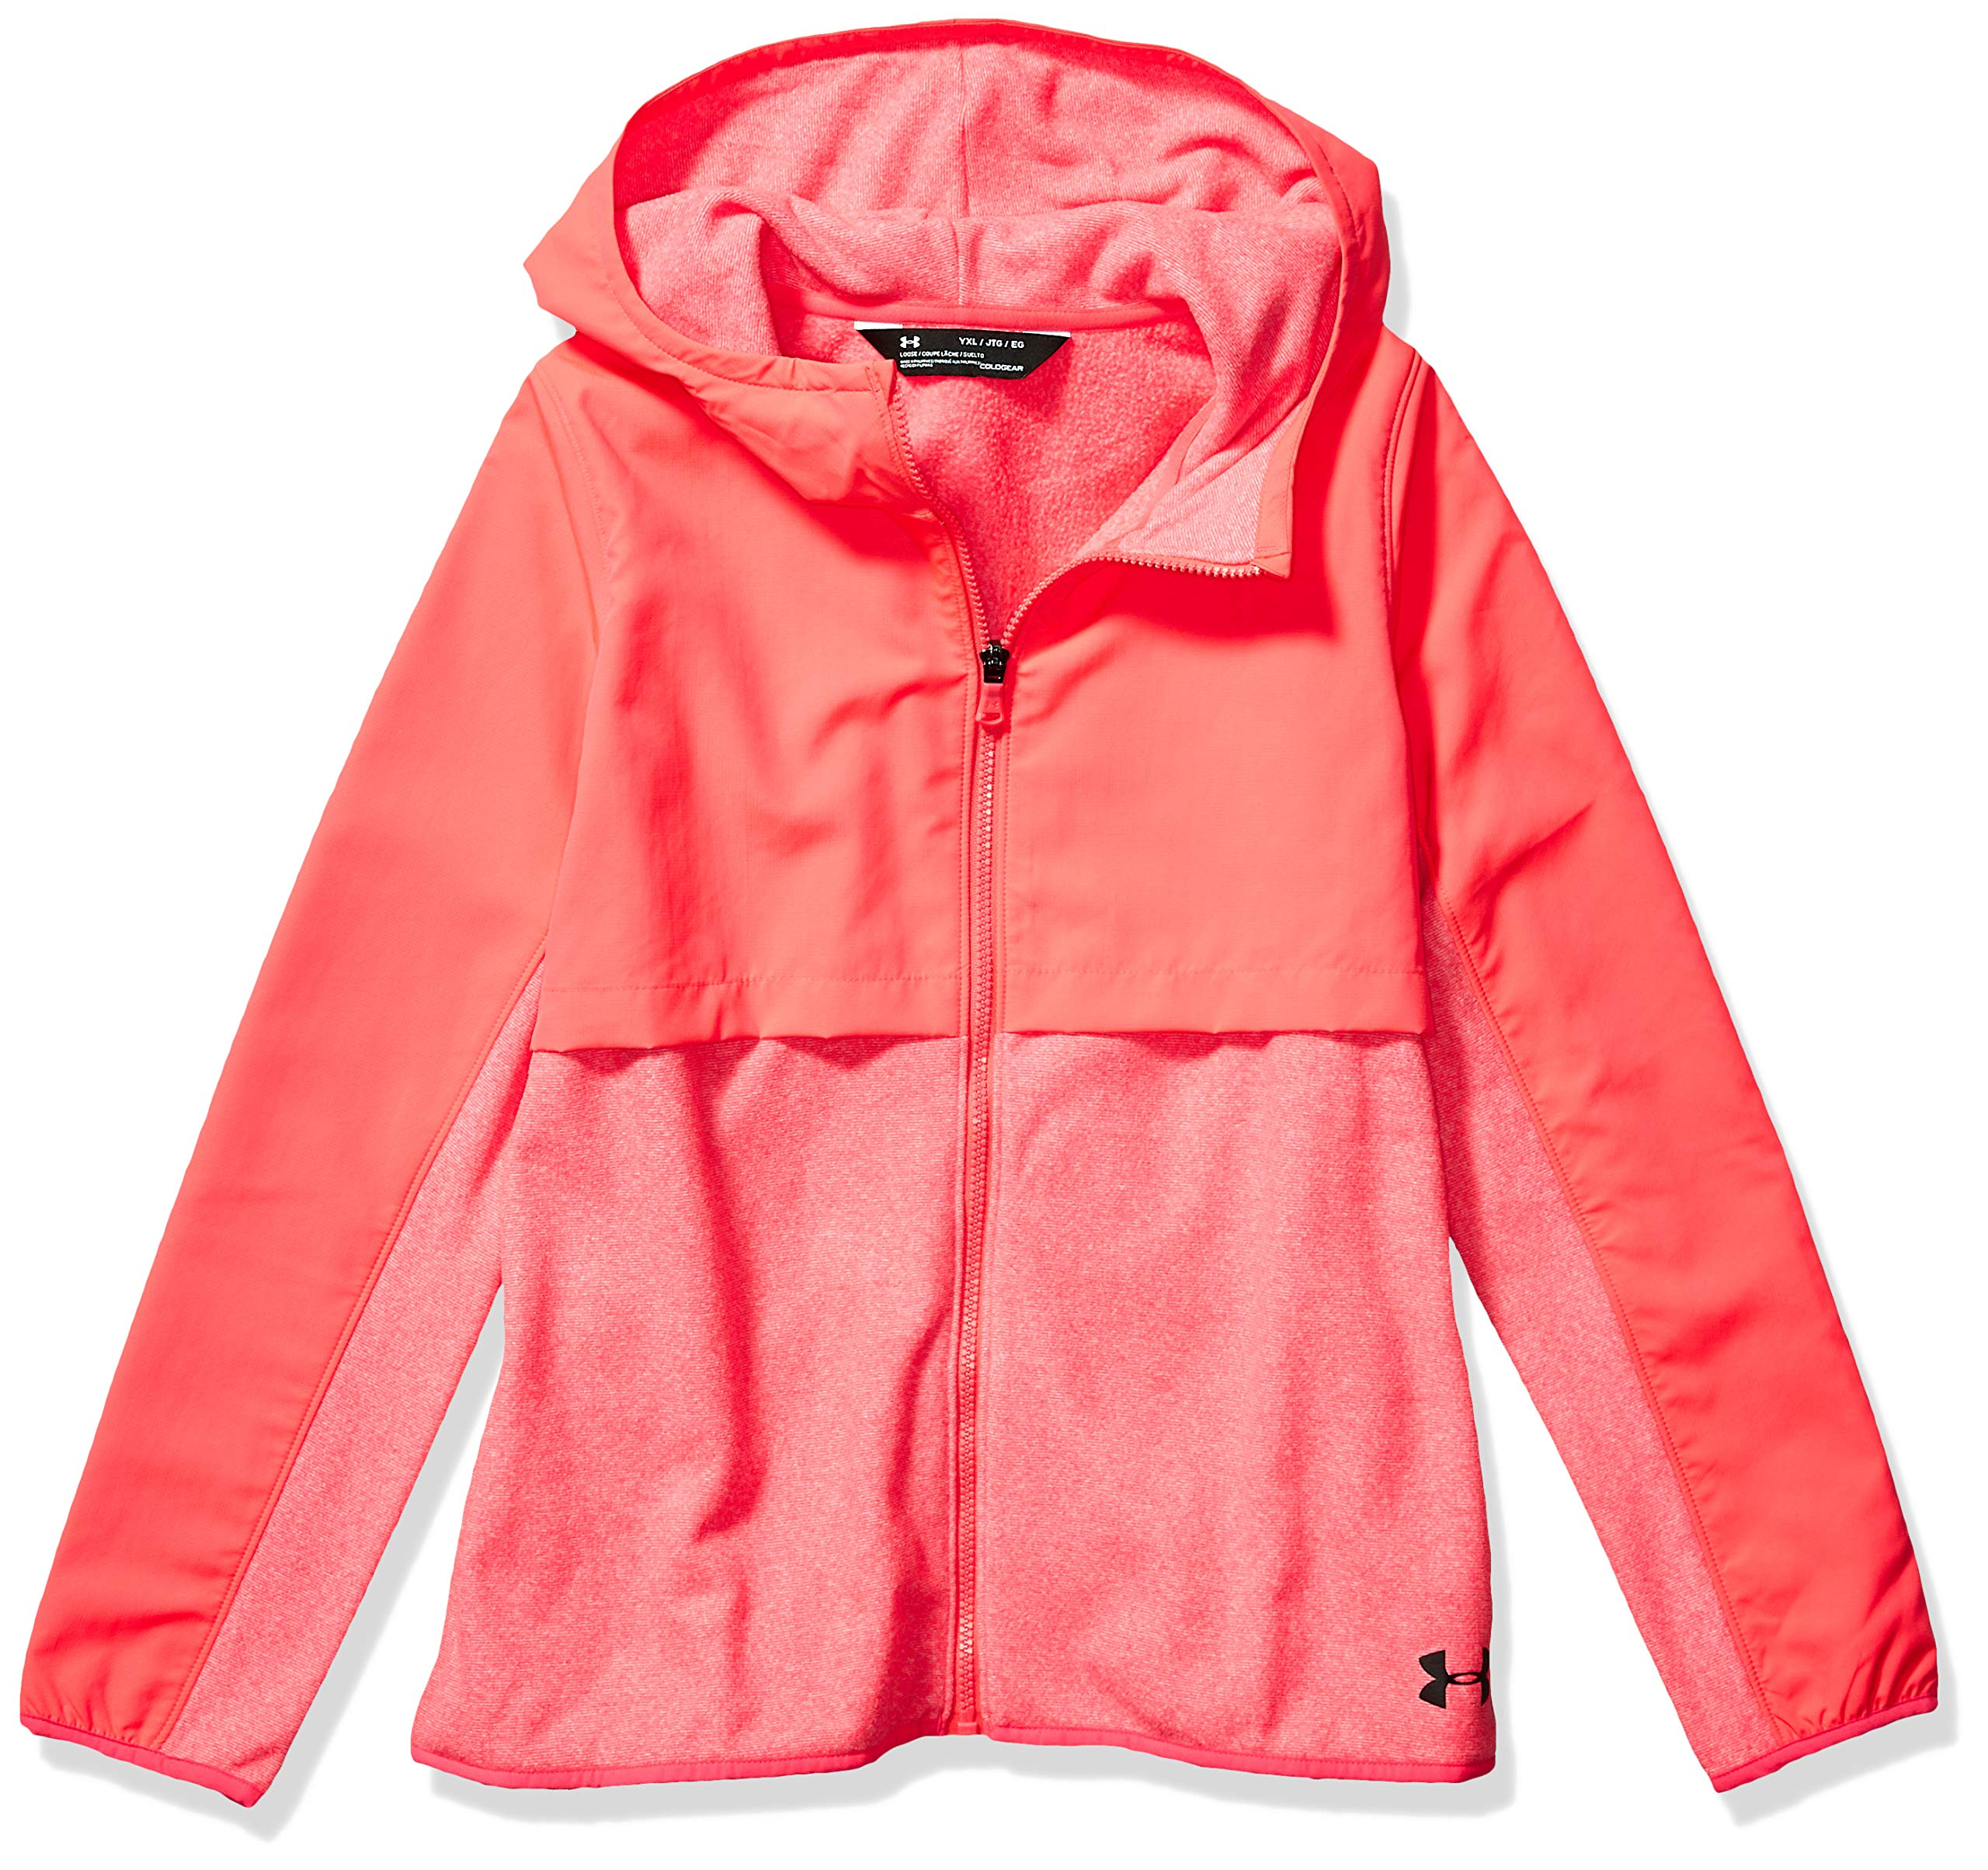 Under Armour Girls Phenom Fleece Full Zip Hoodie, Penta Pink /Black, Youth X-Large by Under Armour